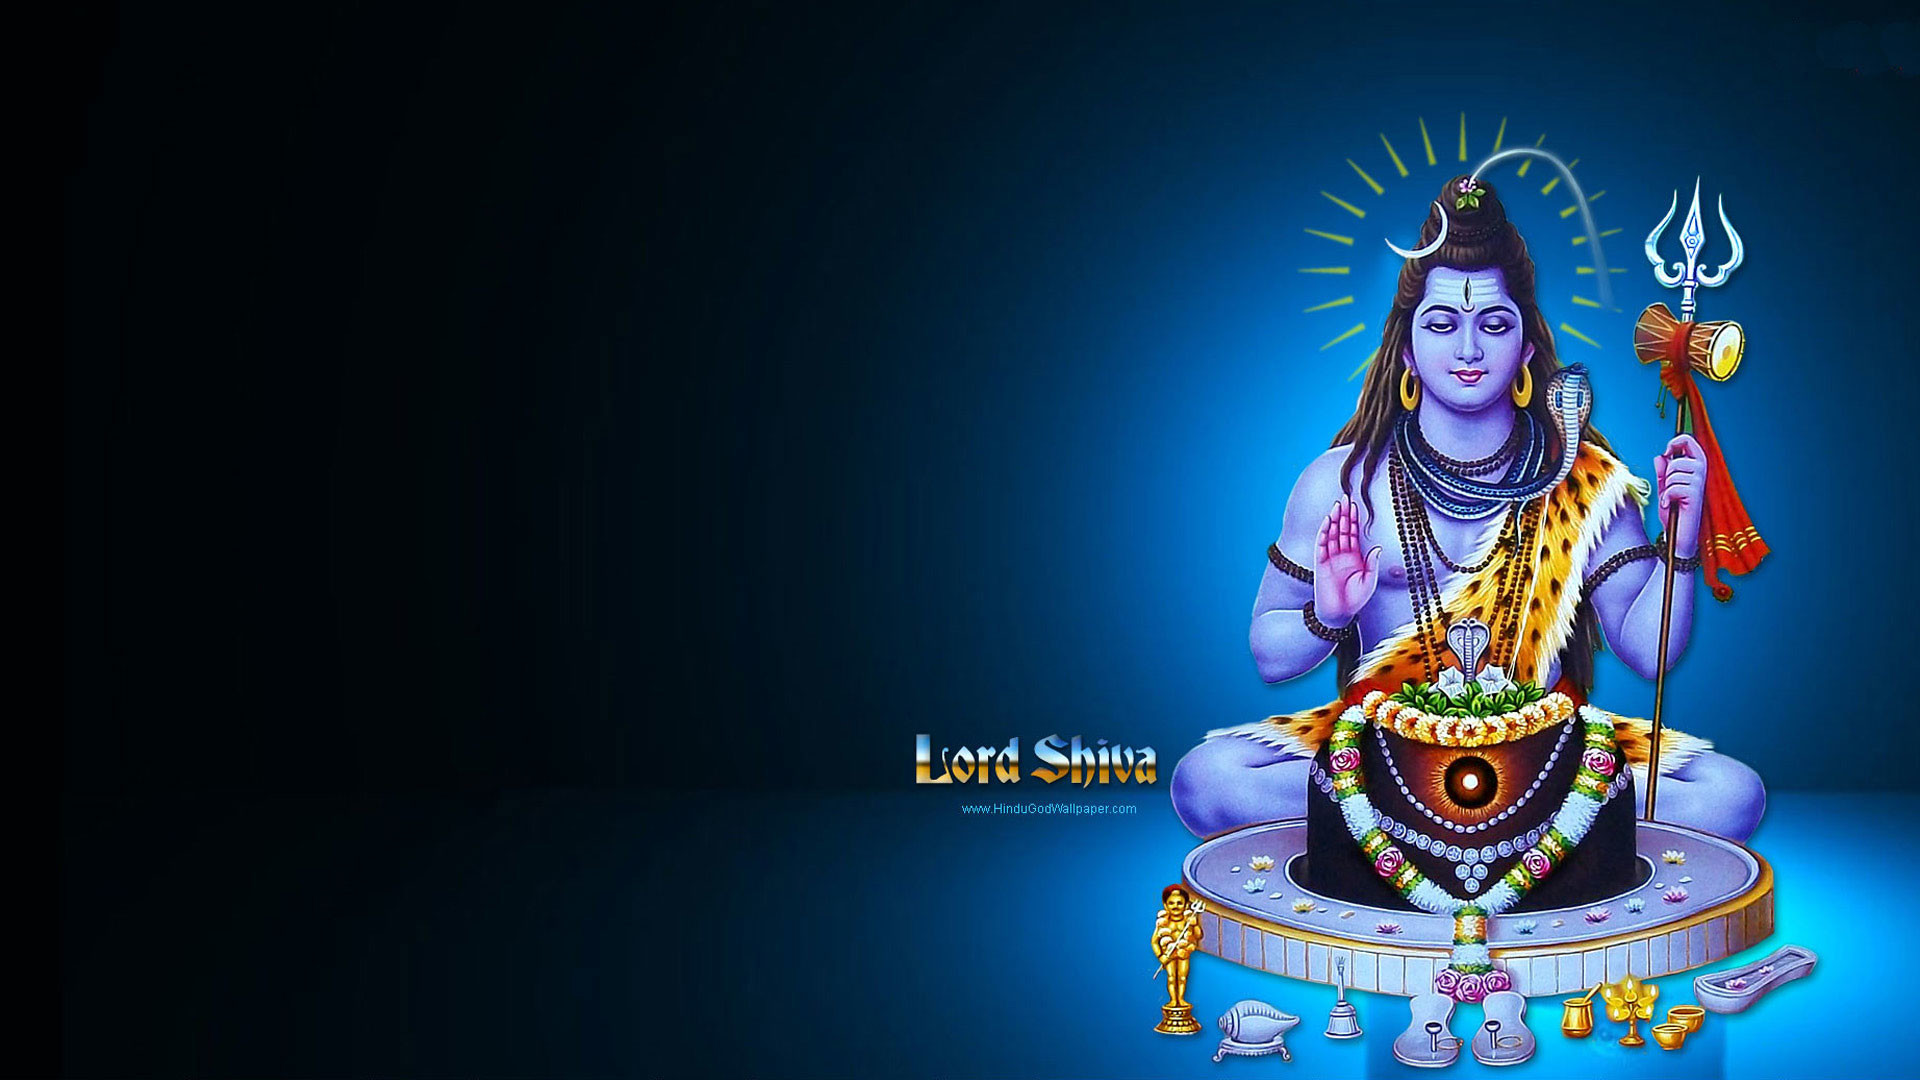 Mahadev Wallpaper Hd: Lord Shiva Wallpapers High Resolution (73+ Images